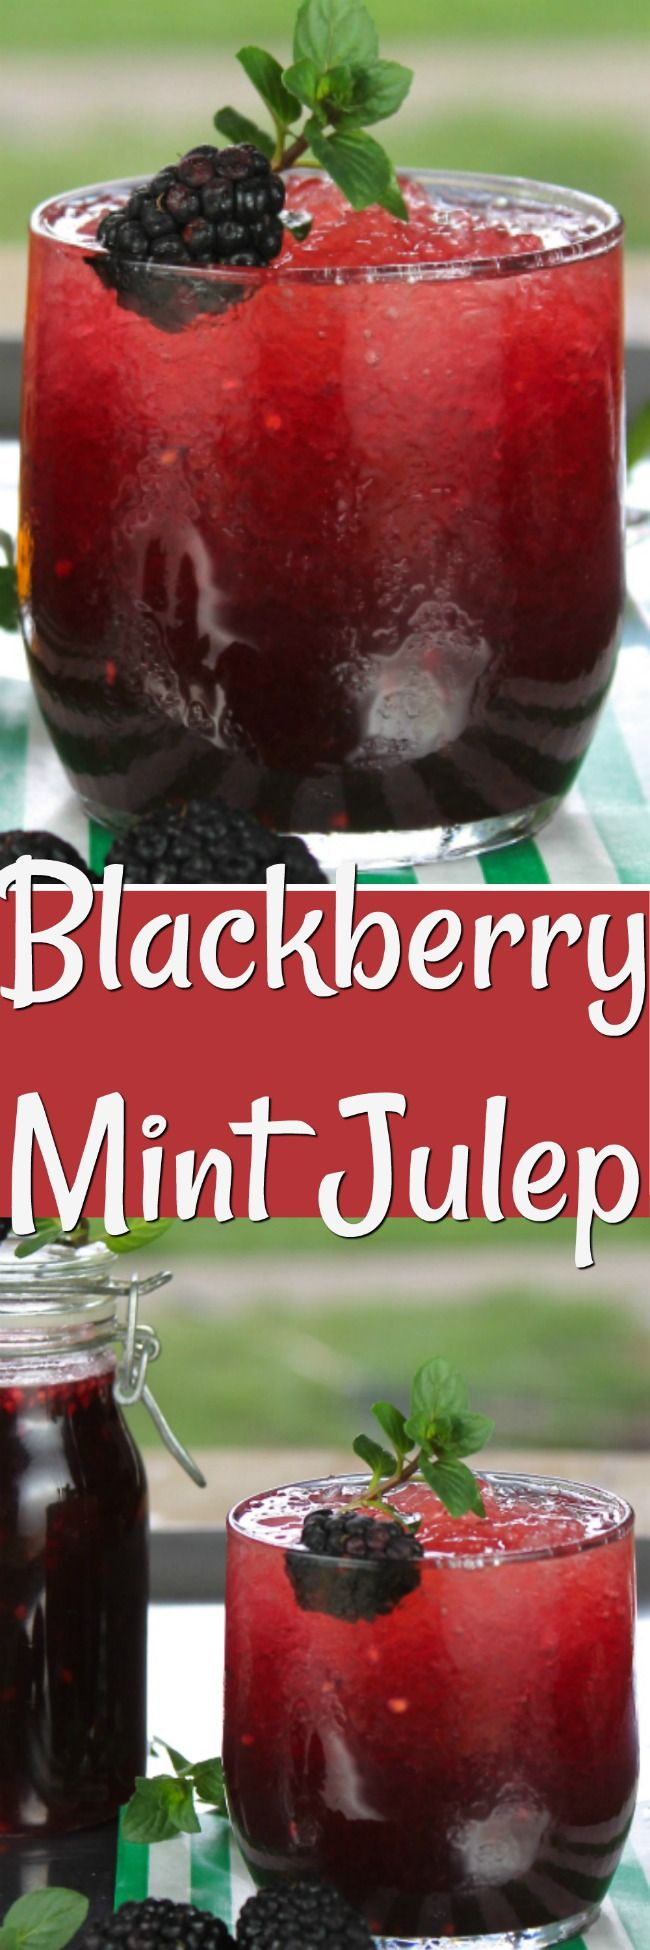 Blackberry Mint Julep a southern twist on the classic Kentucky Derby cocktail.  From missinthekitchen.com #cocktail #kentuckyderby #bourbon #blackberries